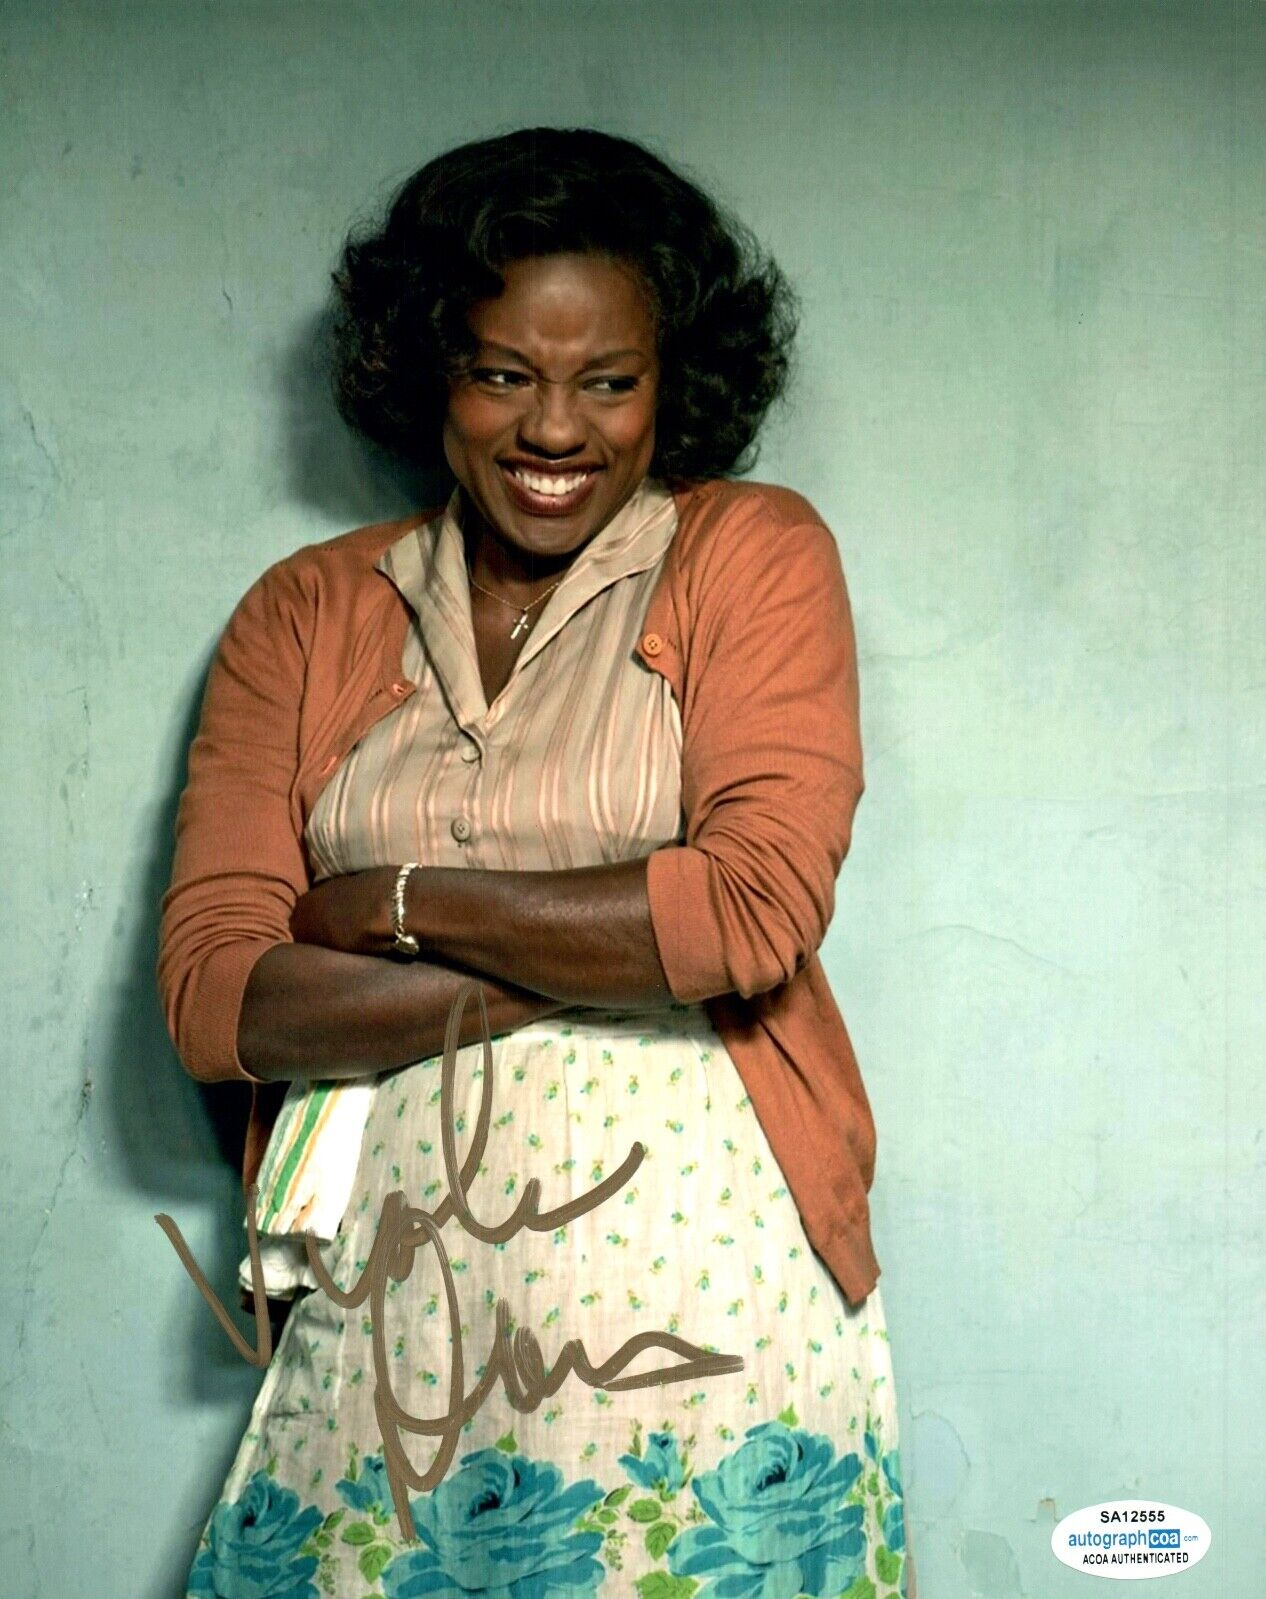 Viola Davis Signed Autographed 8x10 Photo HOW TO GET AWAY WITH MURDER ACOA COA - $49.99